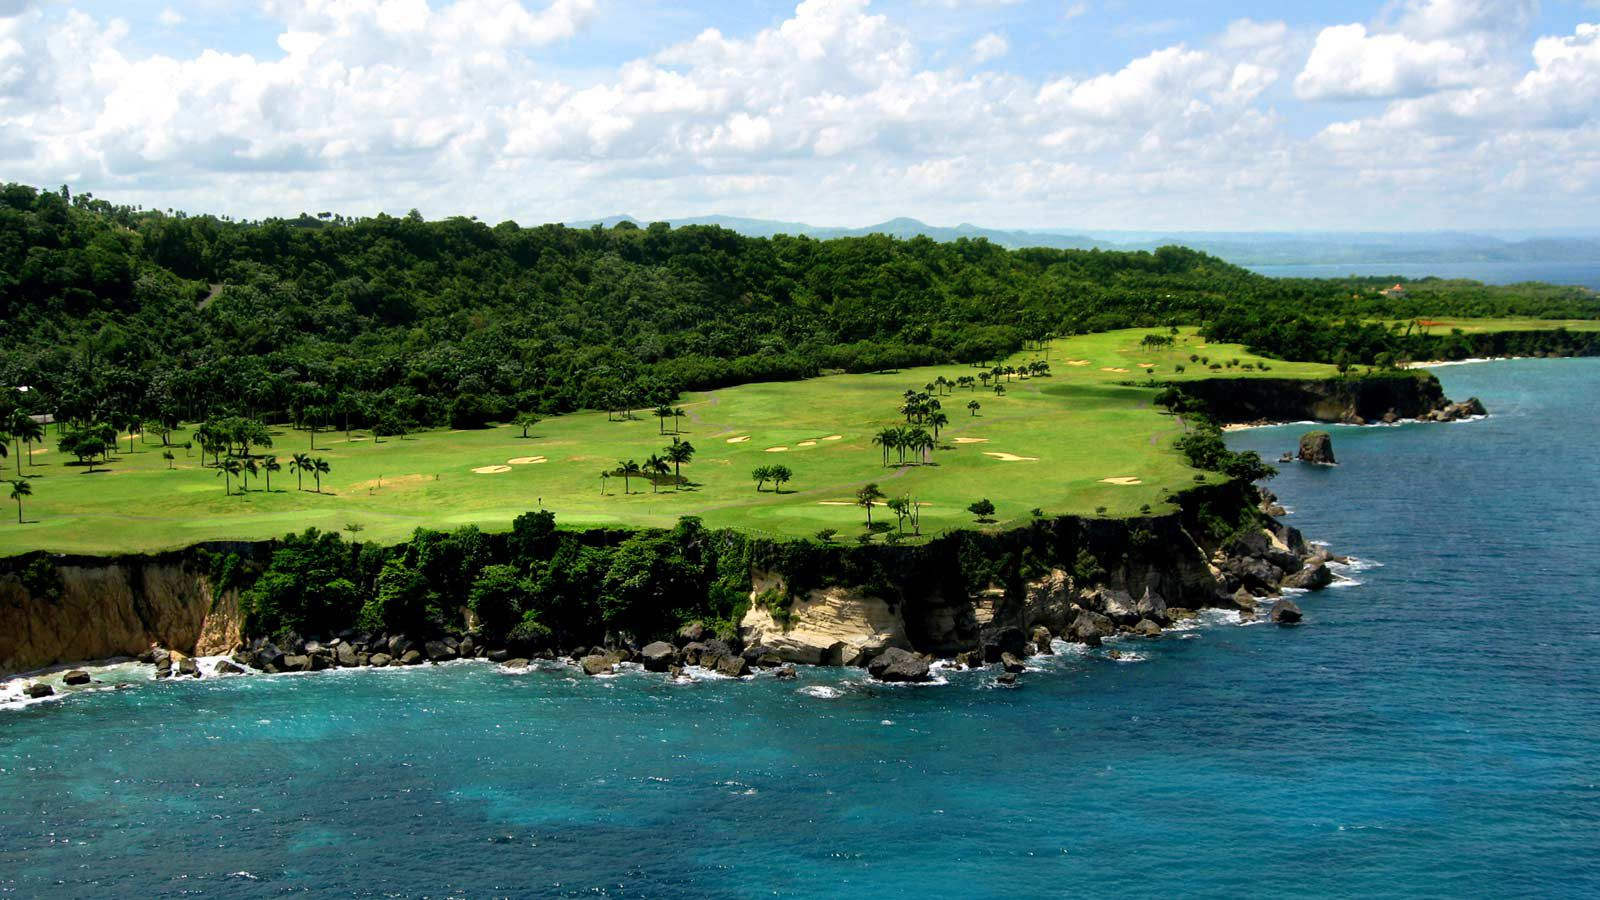 Playa grande golf course cover picture